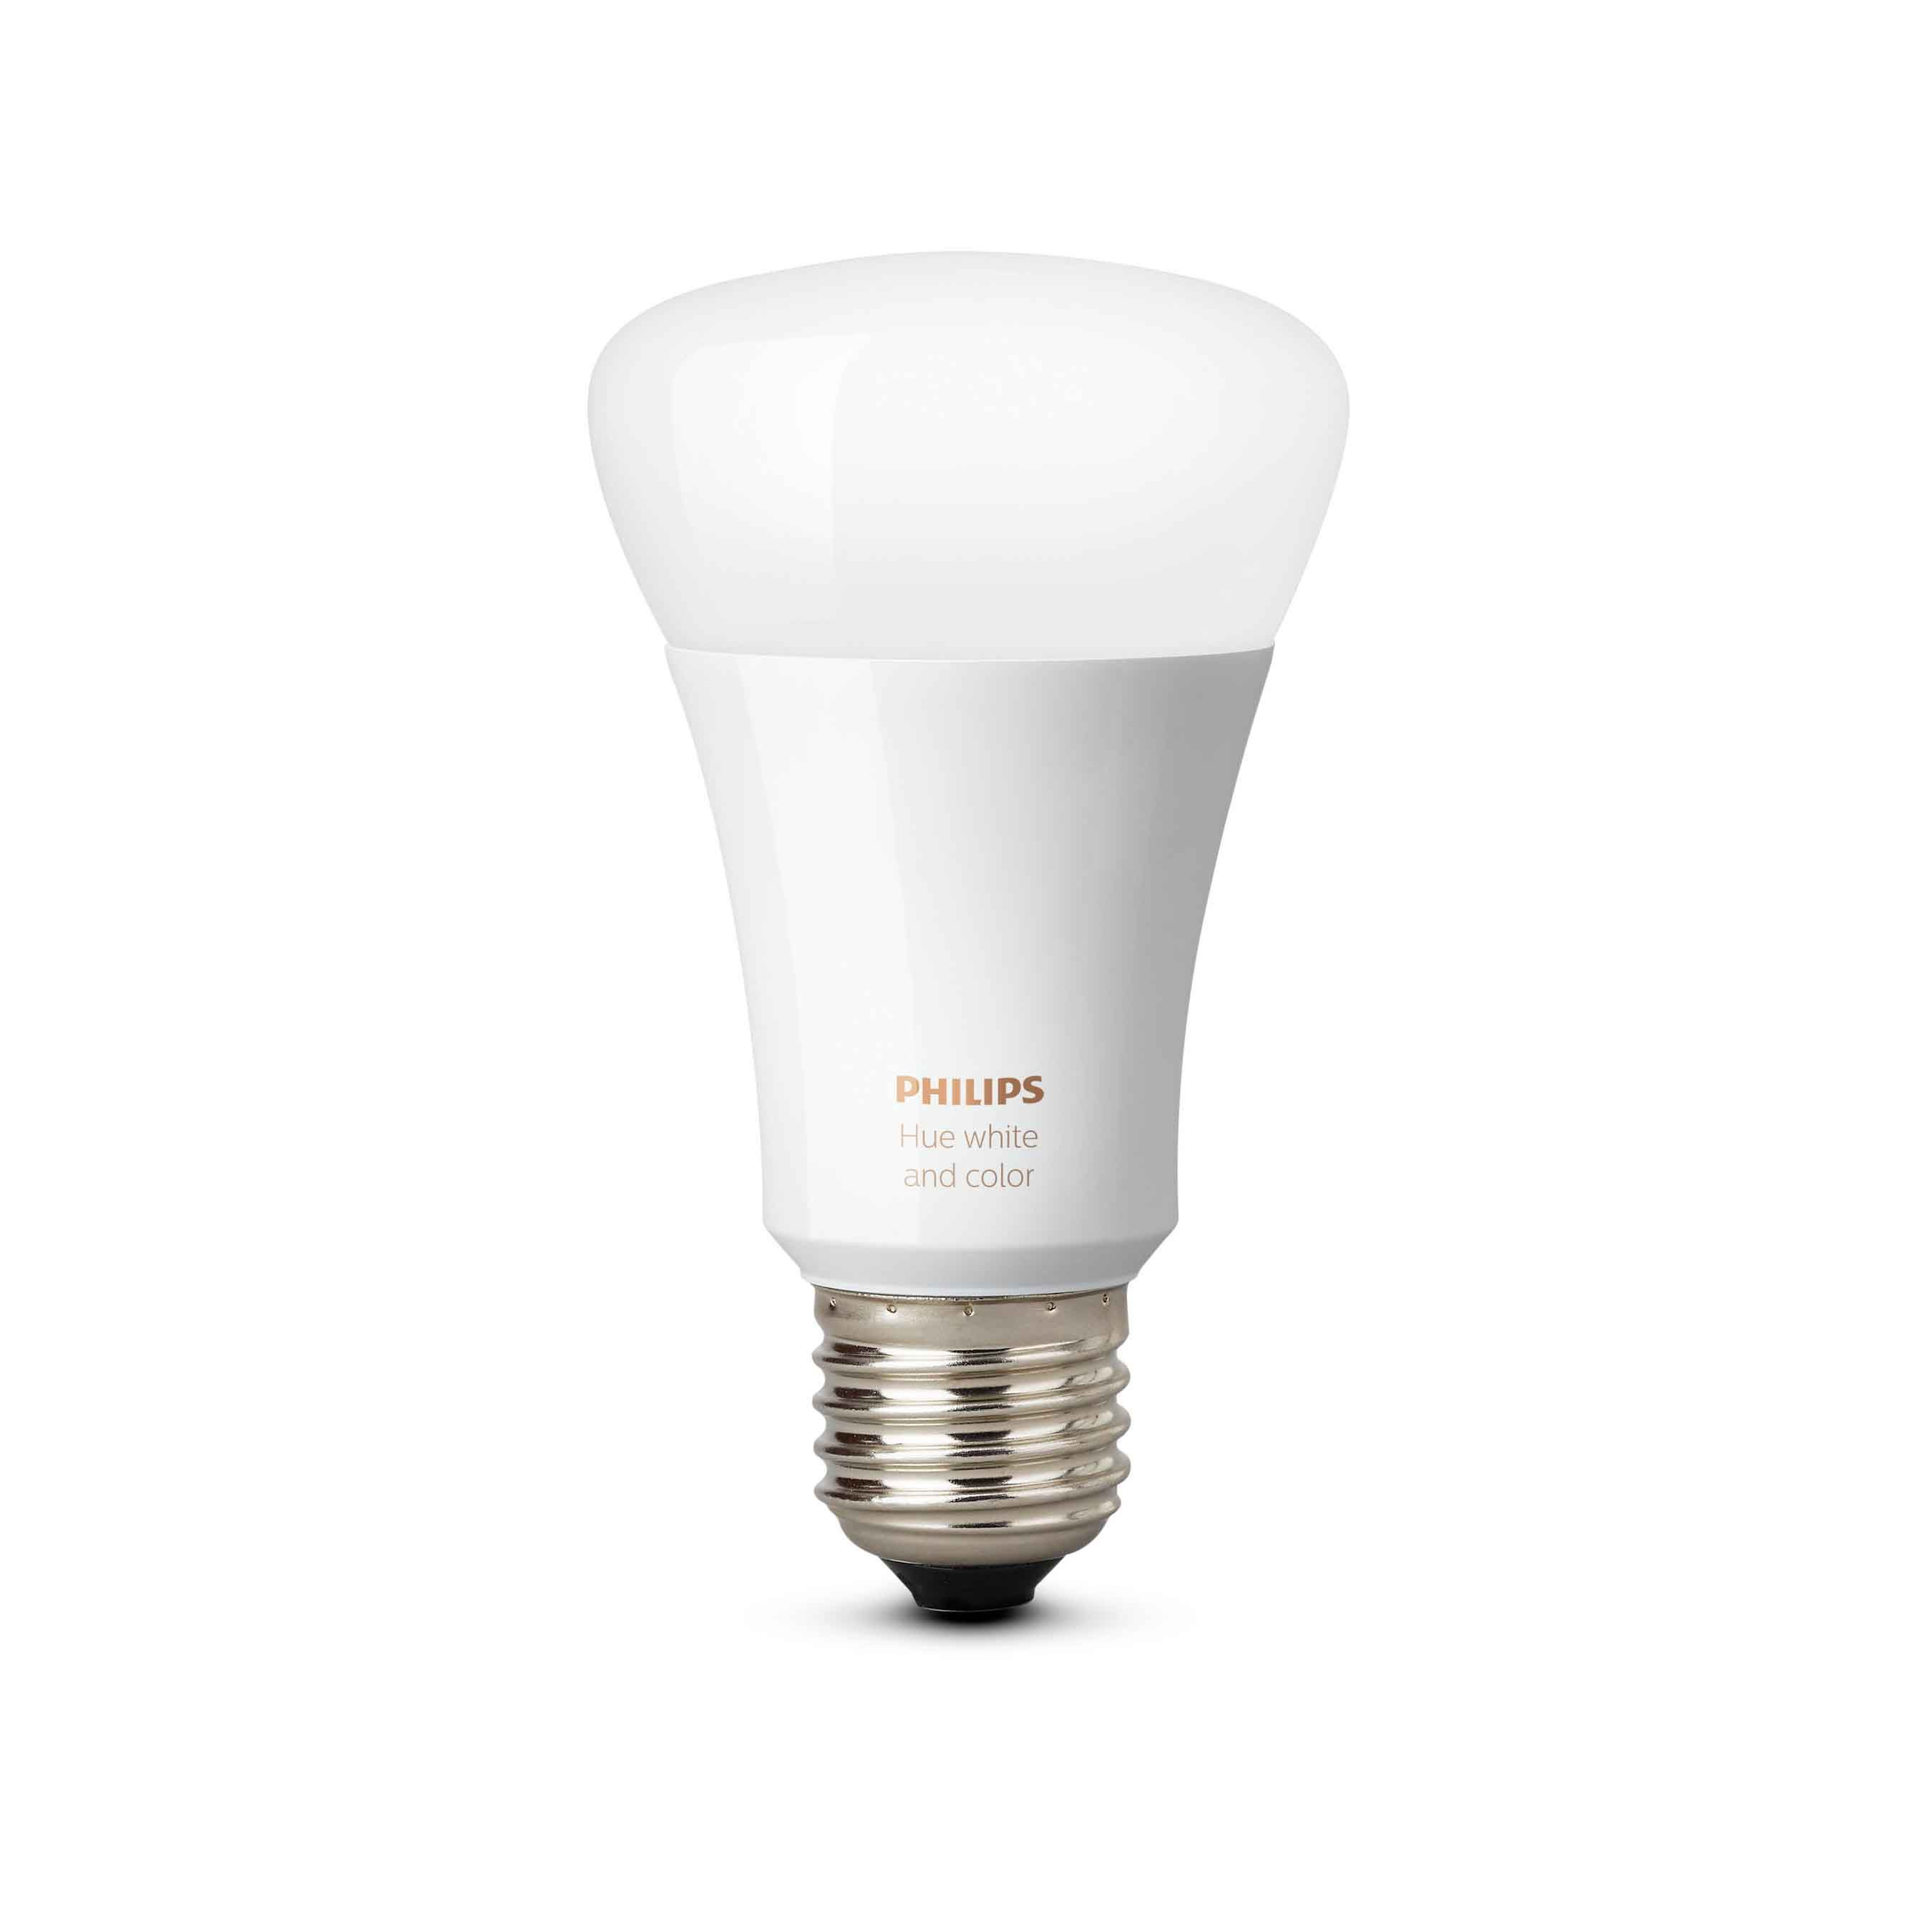 Ledrise High Performance Led Lighting Led Bulb Philips Hue Led E27 Rgbw 10w Smart Light 806lm